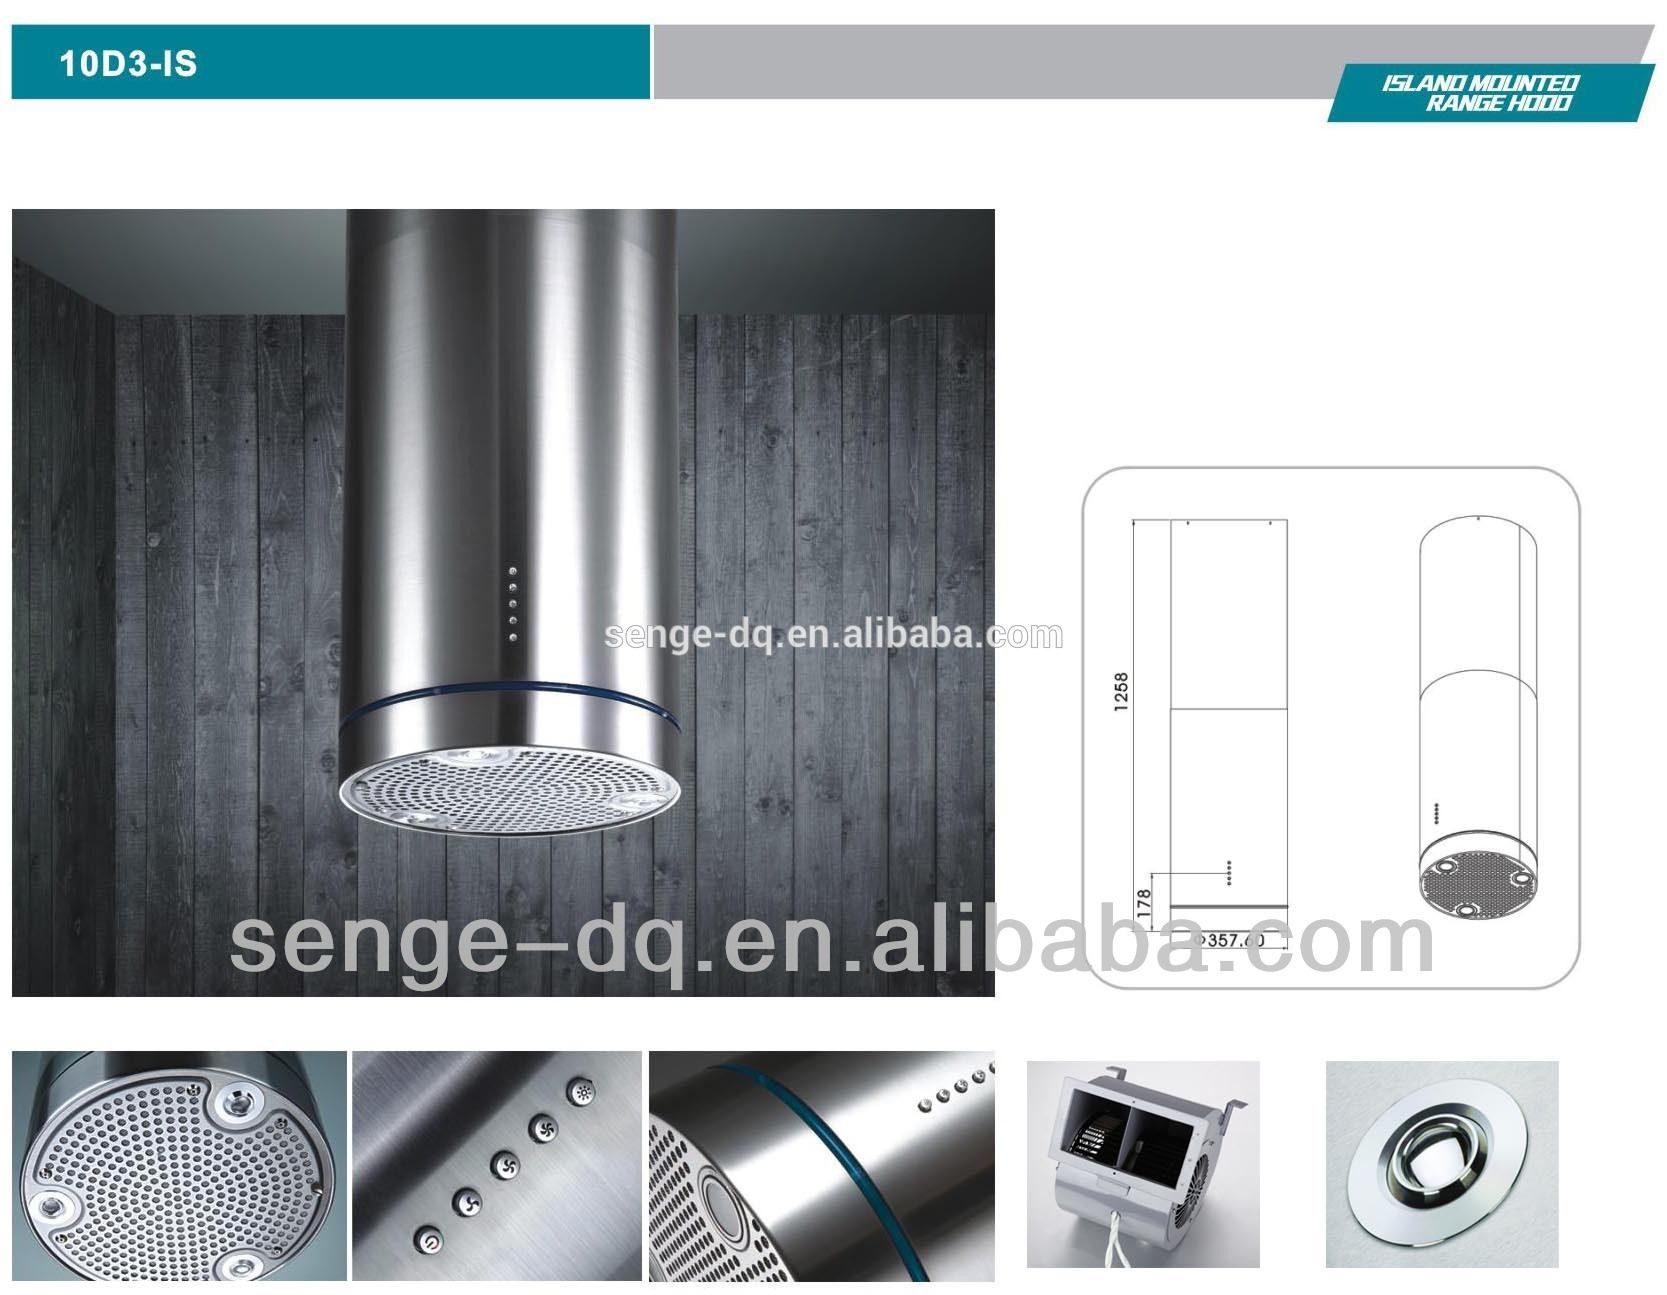 Round Island Cooker Hood Photo Detailed About Round Island Cooker Hood Picture On Alibaba Com Island Cooker Hoods Cooker Hoods Kitchen Island Range Hood